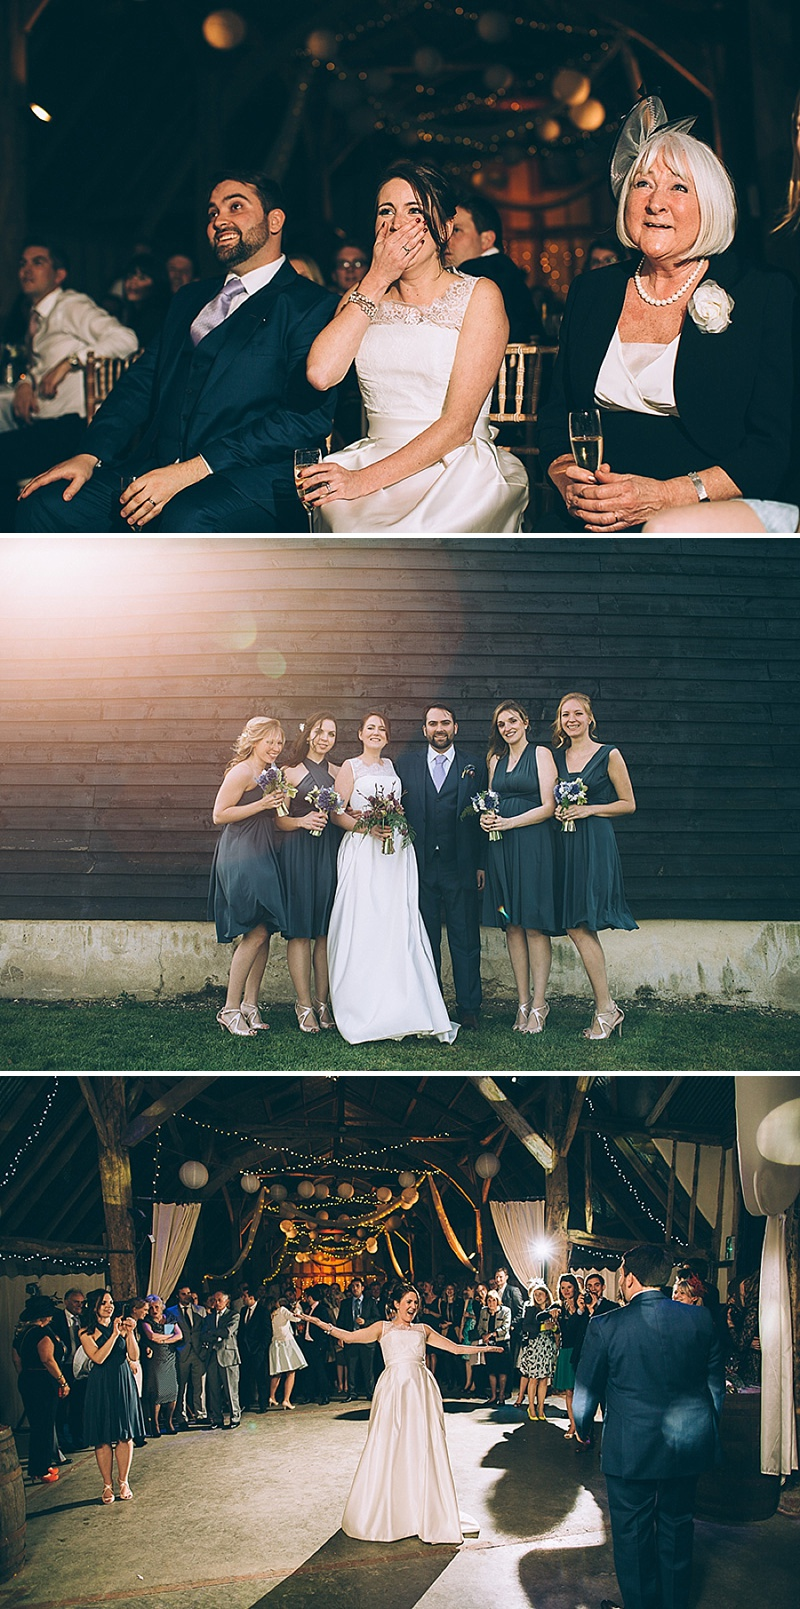 A wedding at Alpheton Hall Barns in Suffolk with a Jesus Peiro ballgown dress navy bridesmaids and DIY_0163